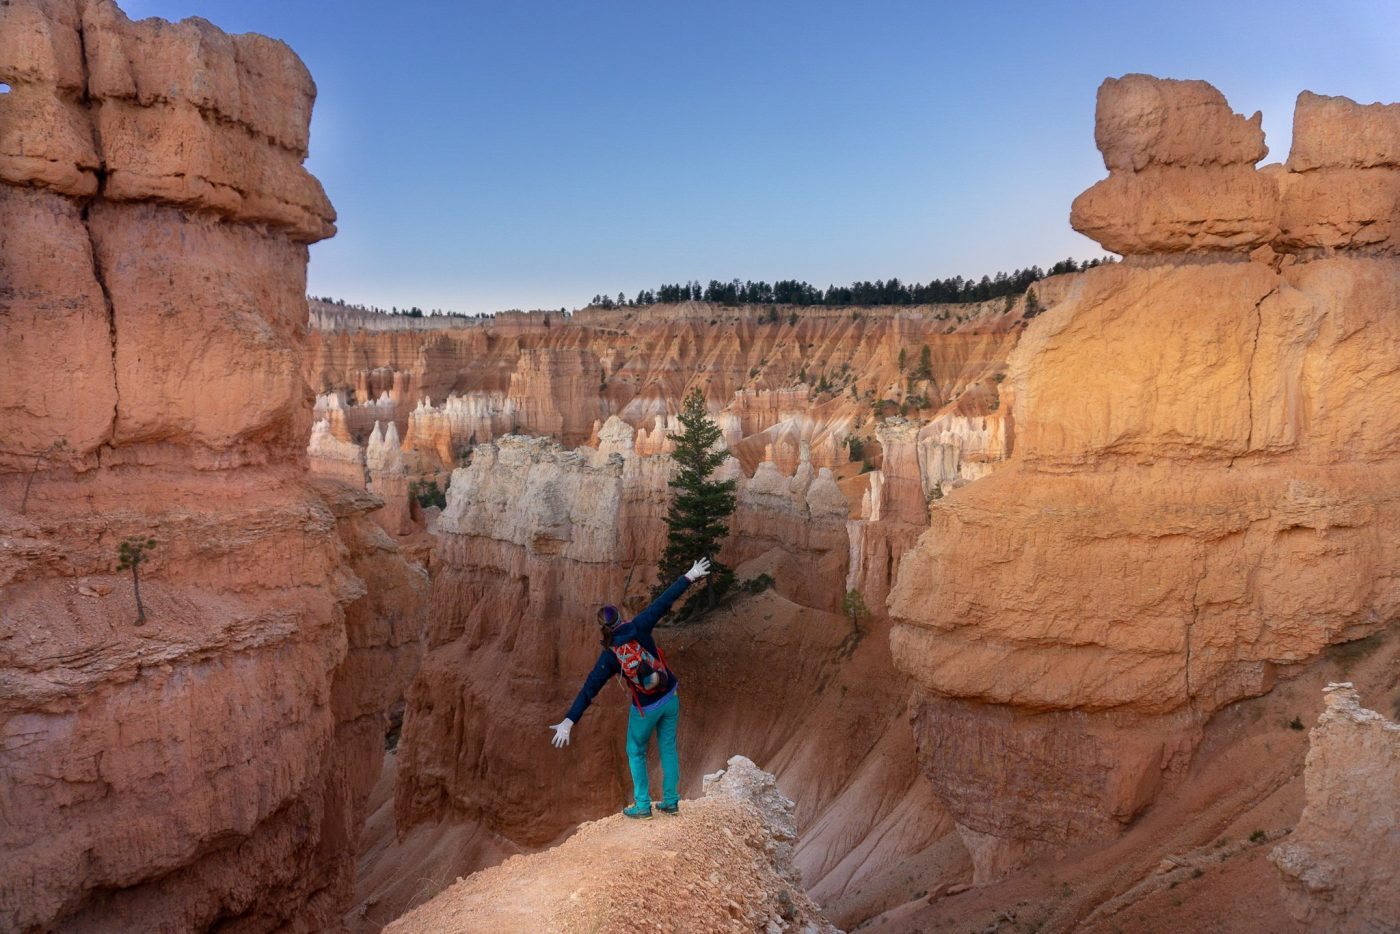 bryce canyon hikes Queens garden trail